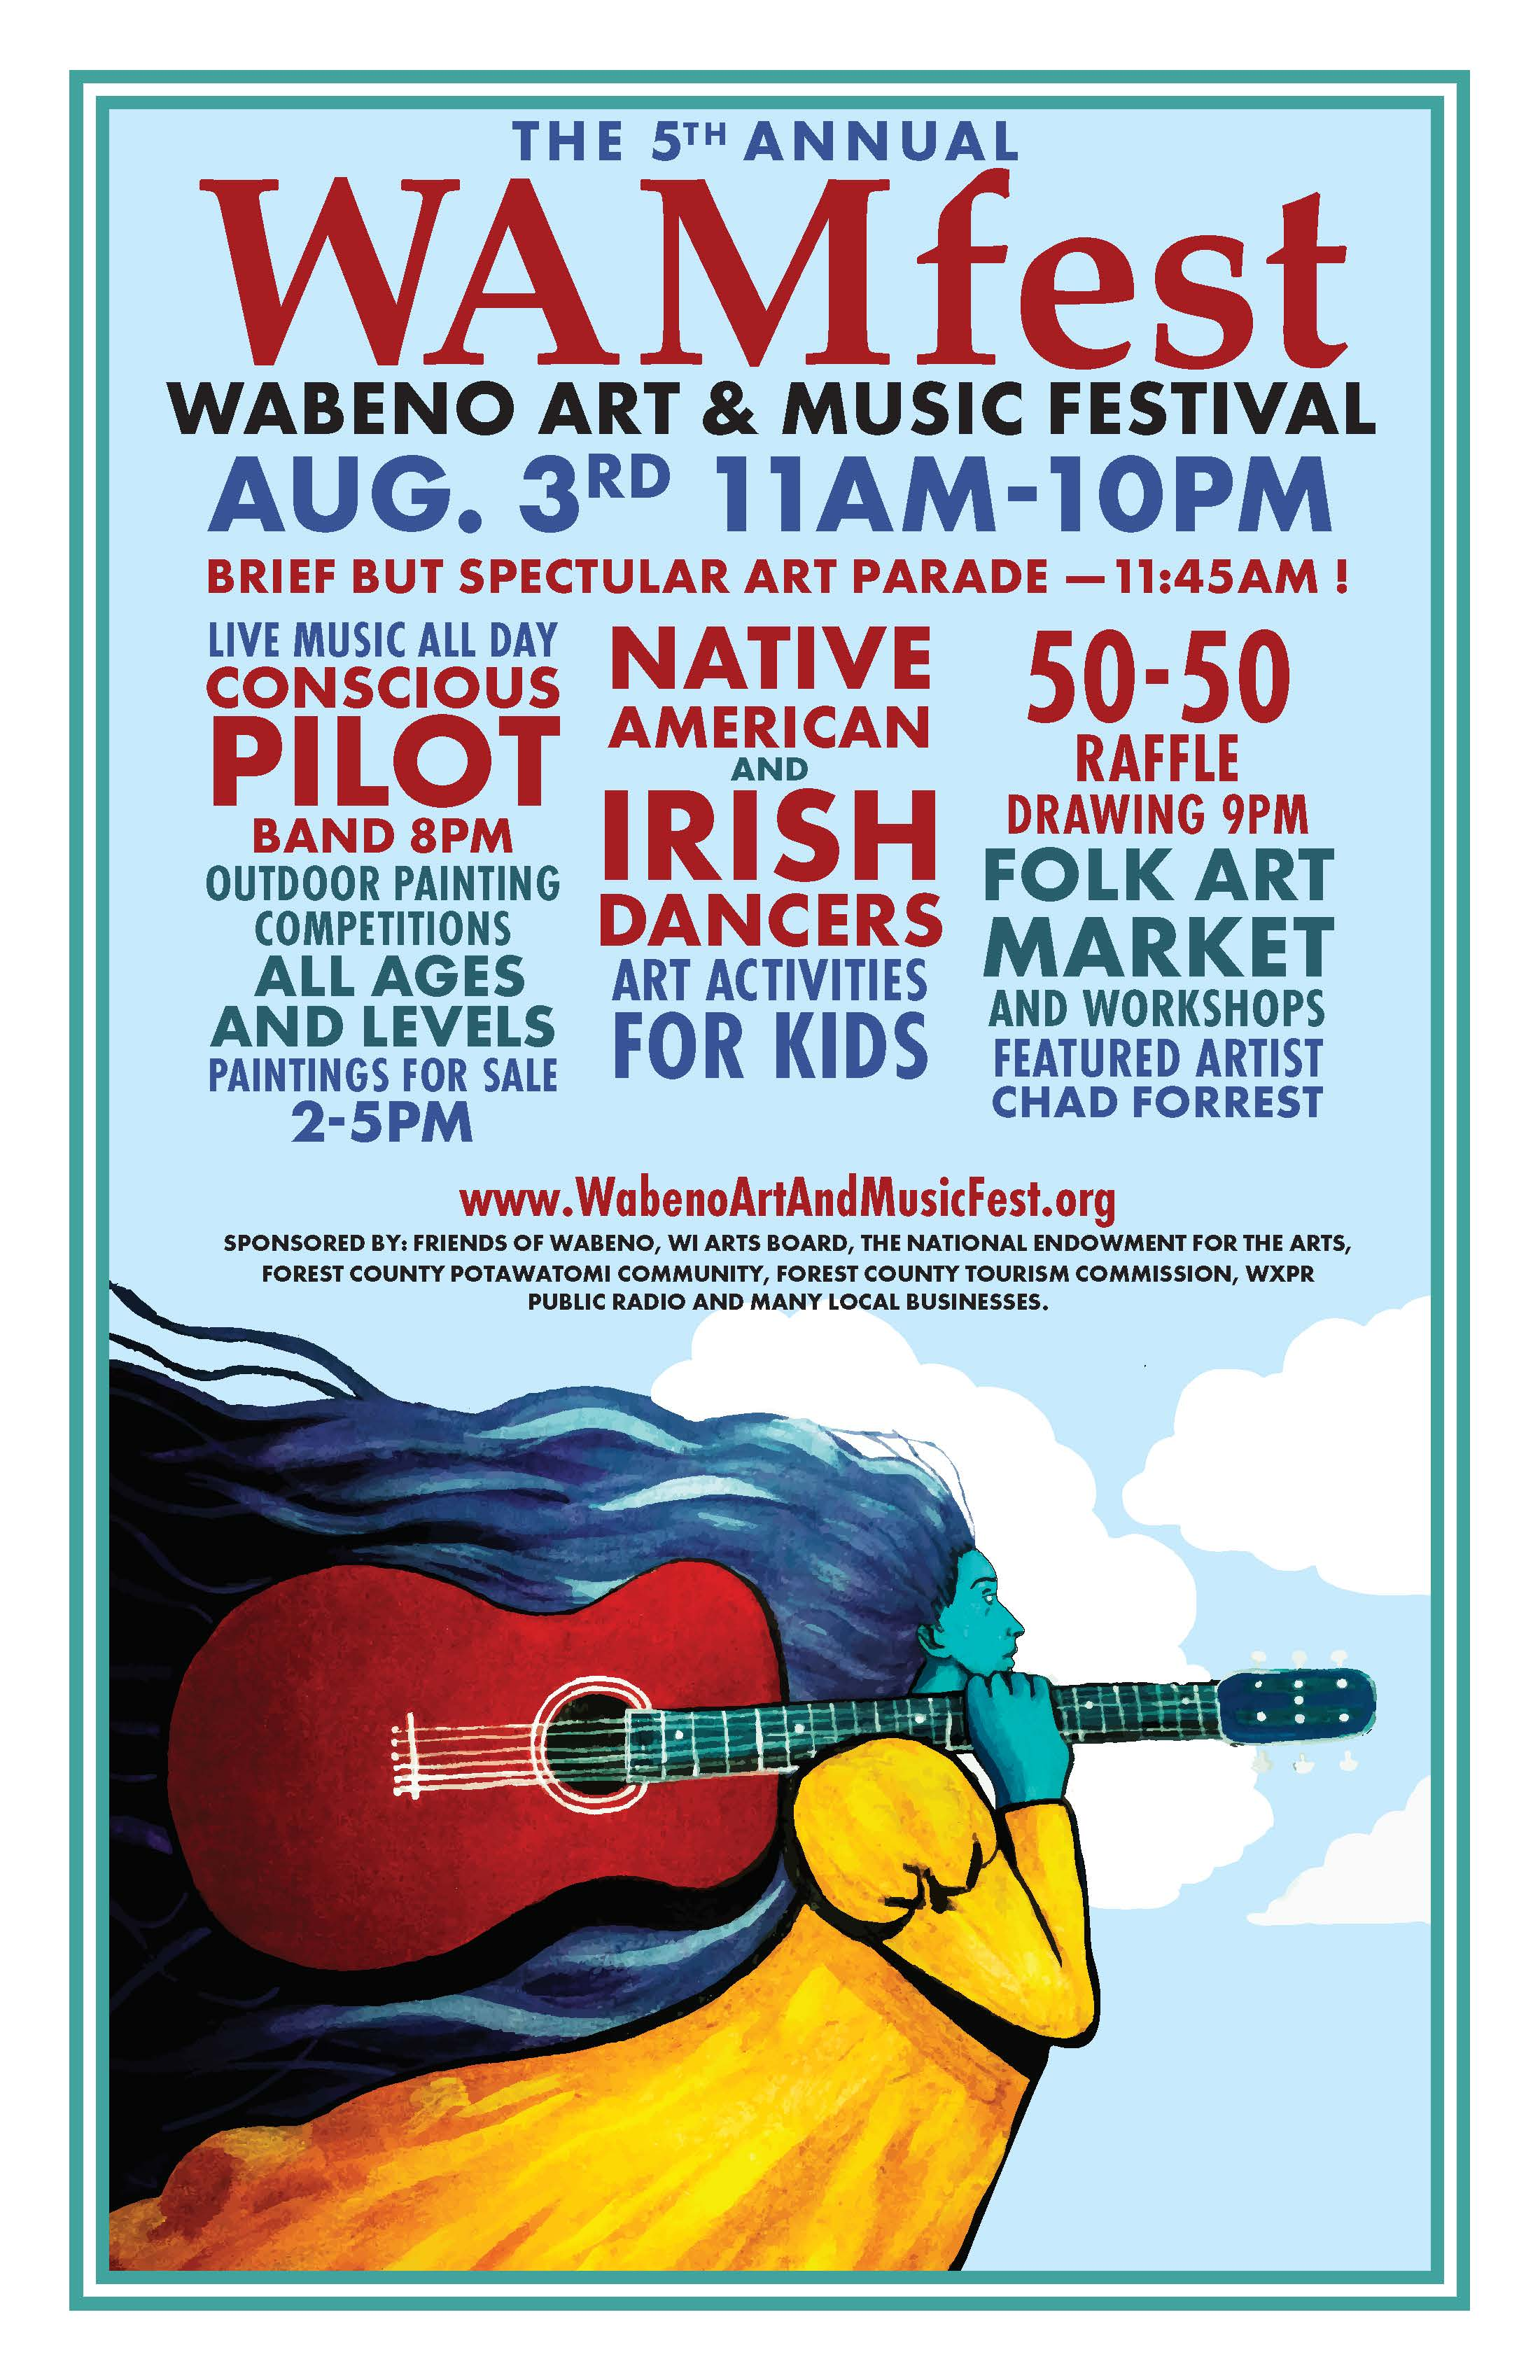 2019 WAMfest – 5th Annual Wabeno Art and Music Festival August 3, 2019